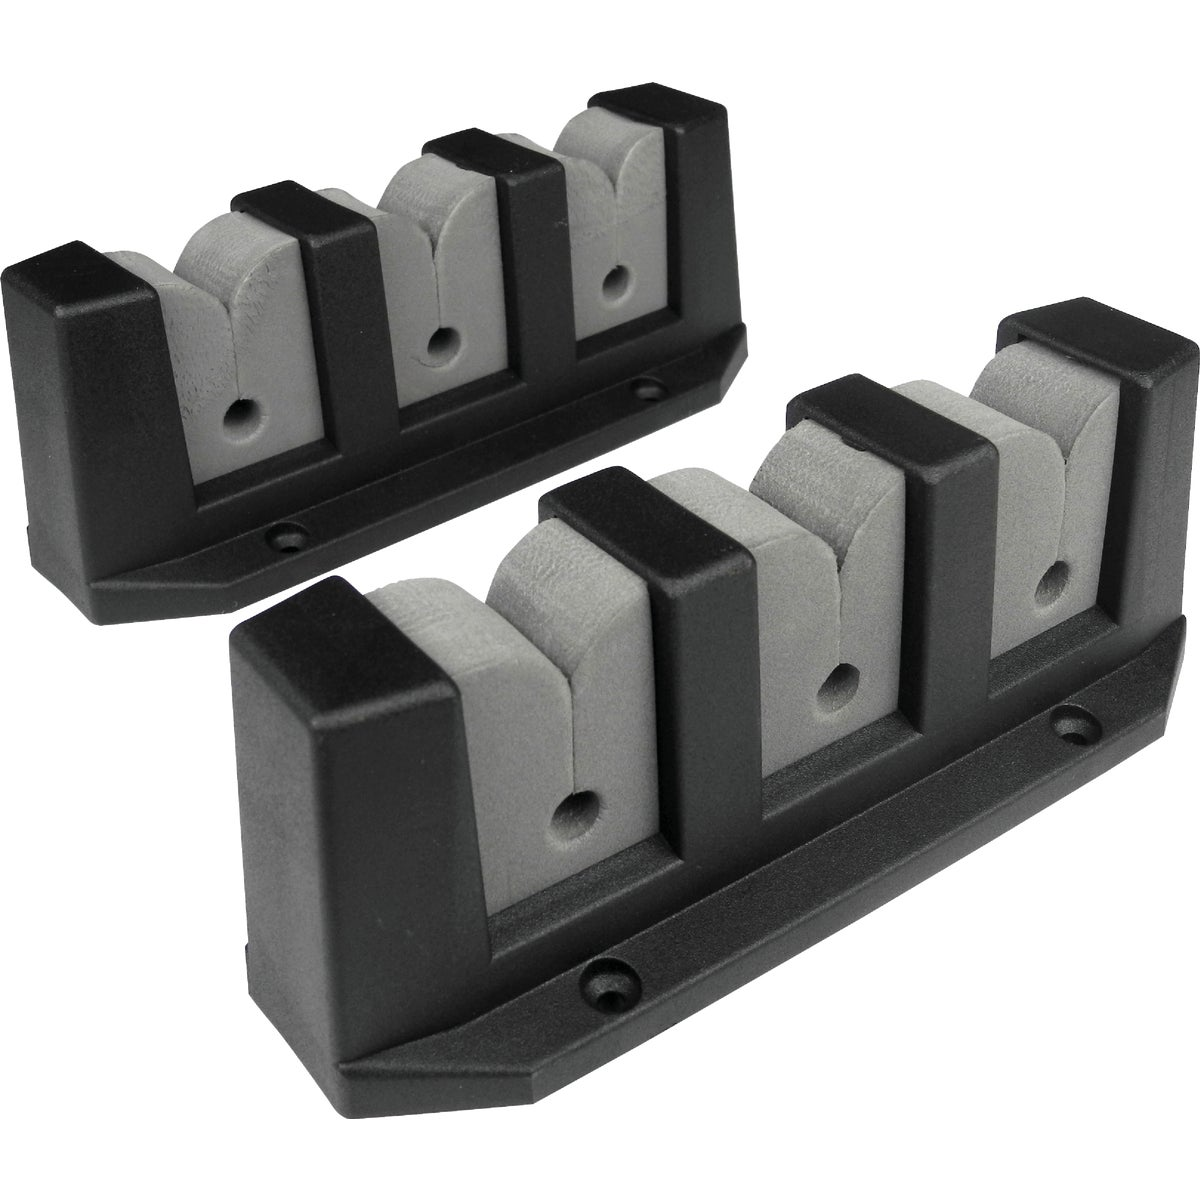 3 ROD STORAGE HOLDER - 89501 by Seachoice Prod